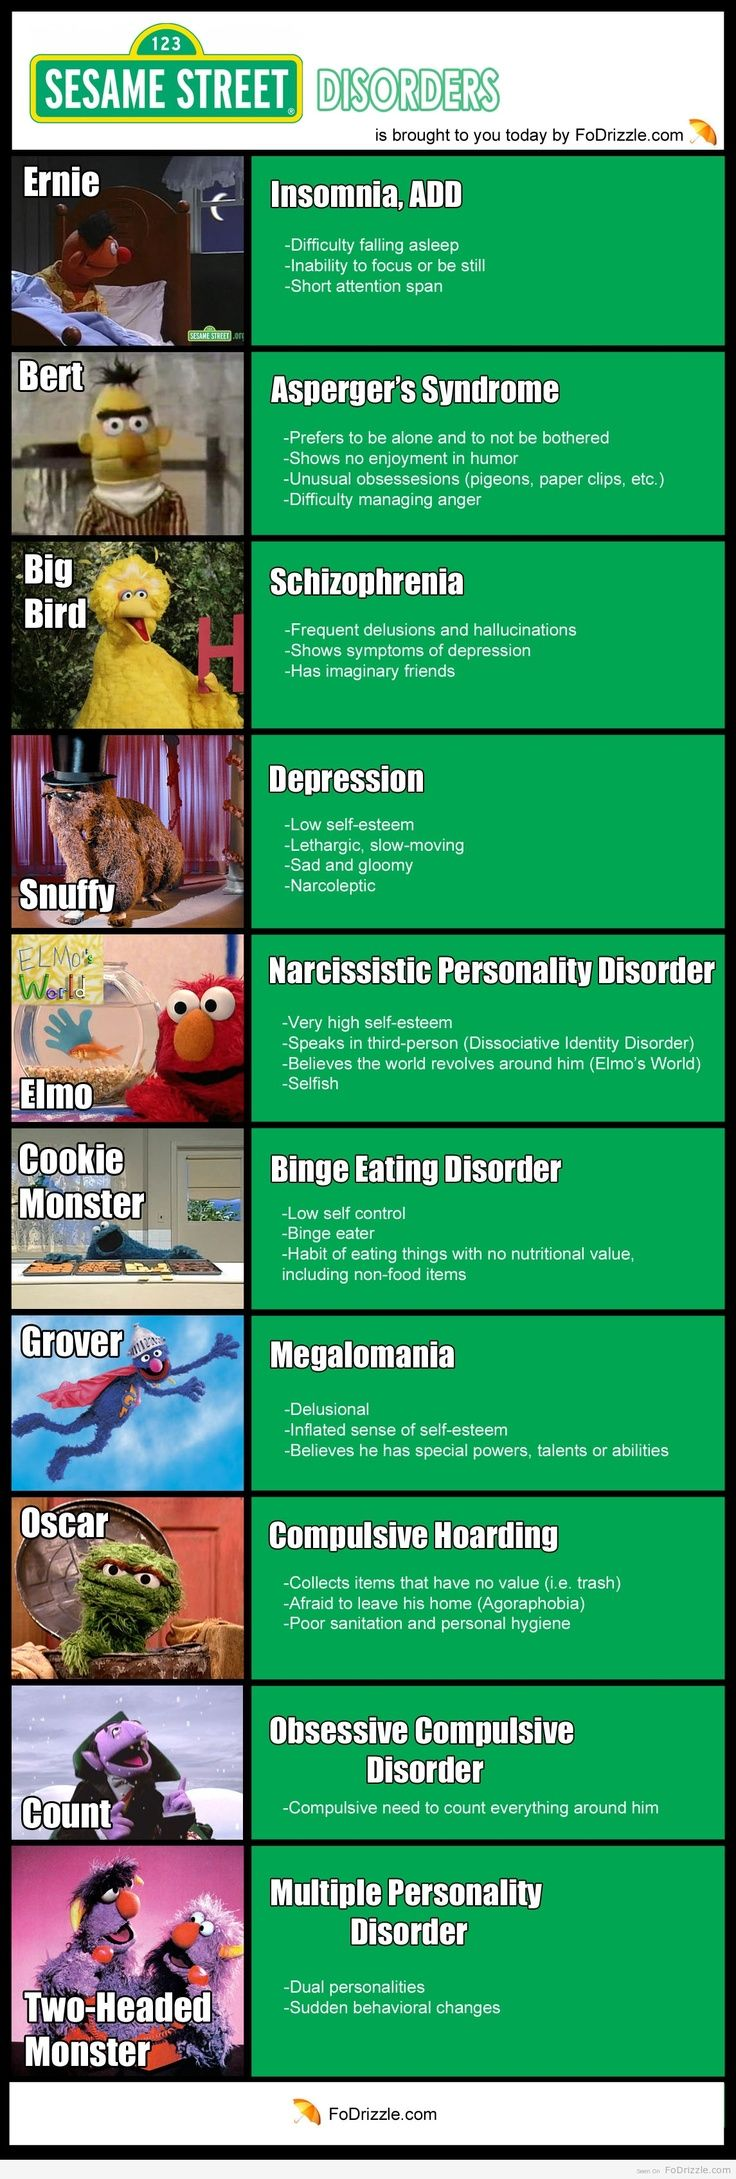 Free Online Disorder Test: Brought to You by Sesame Street